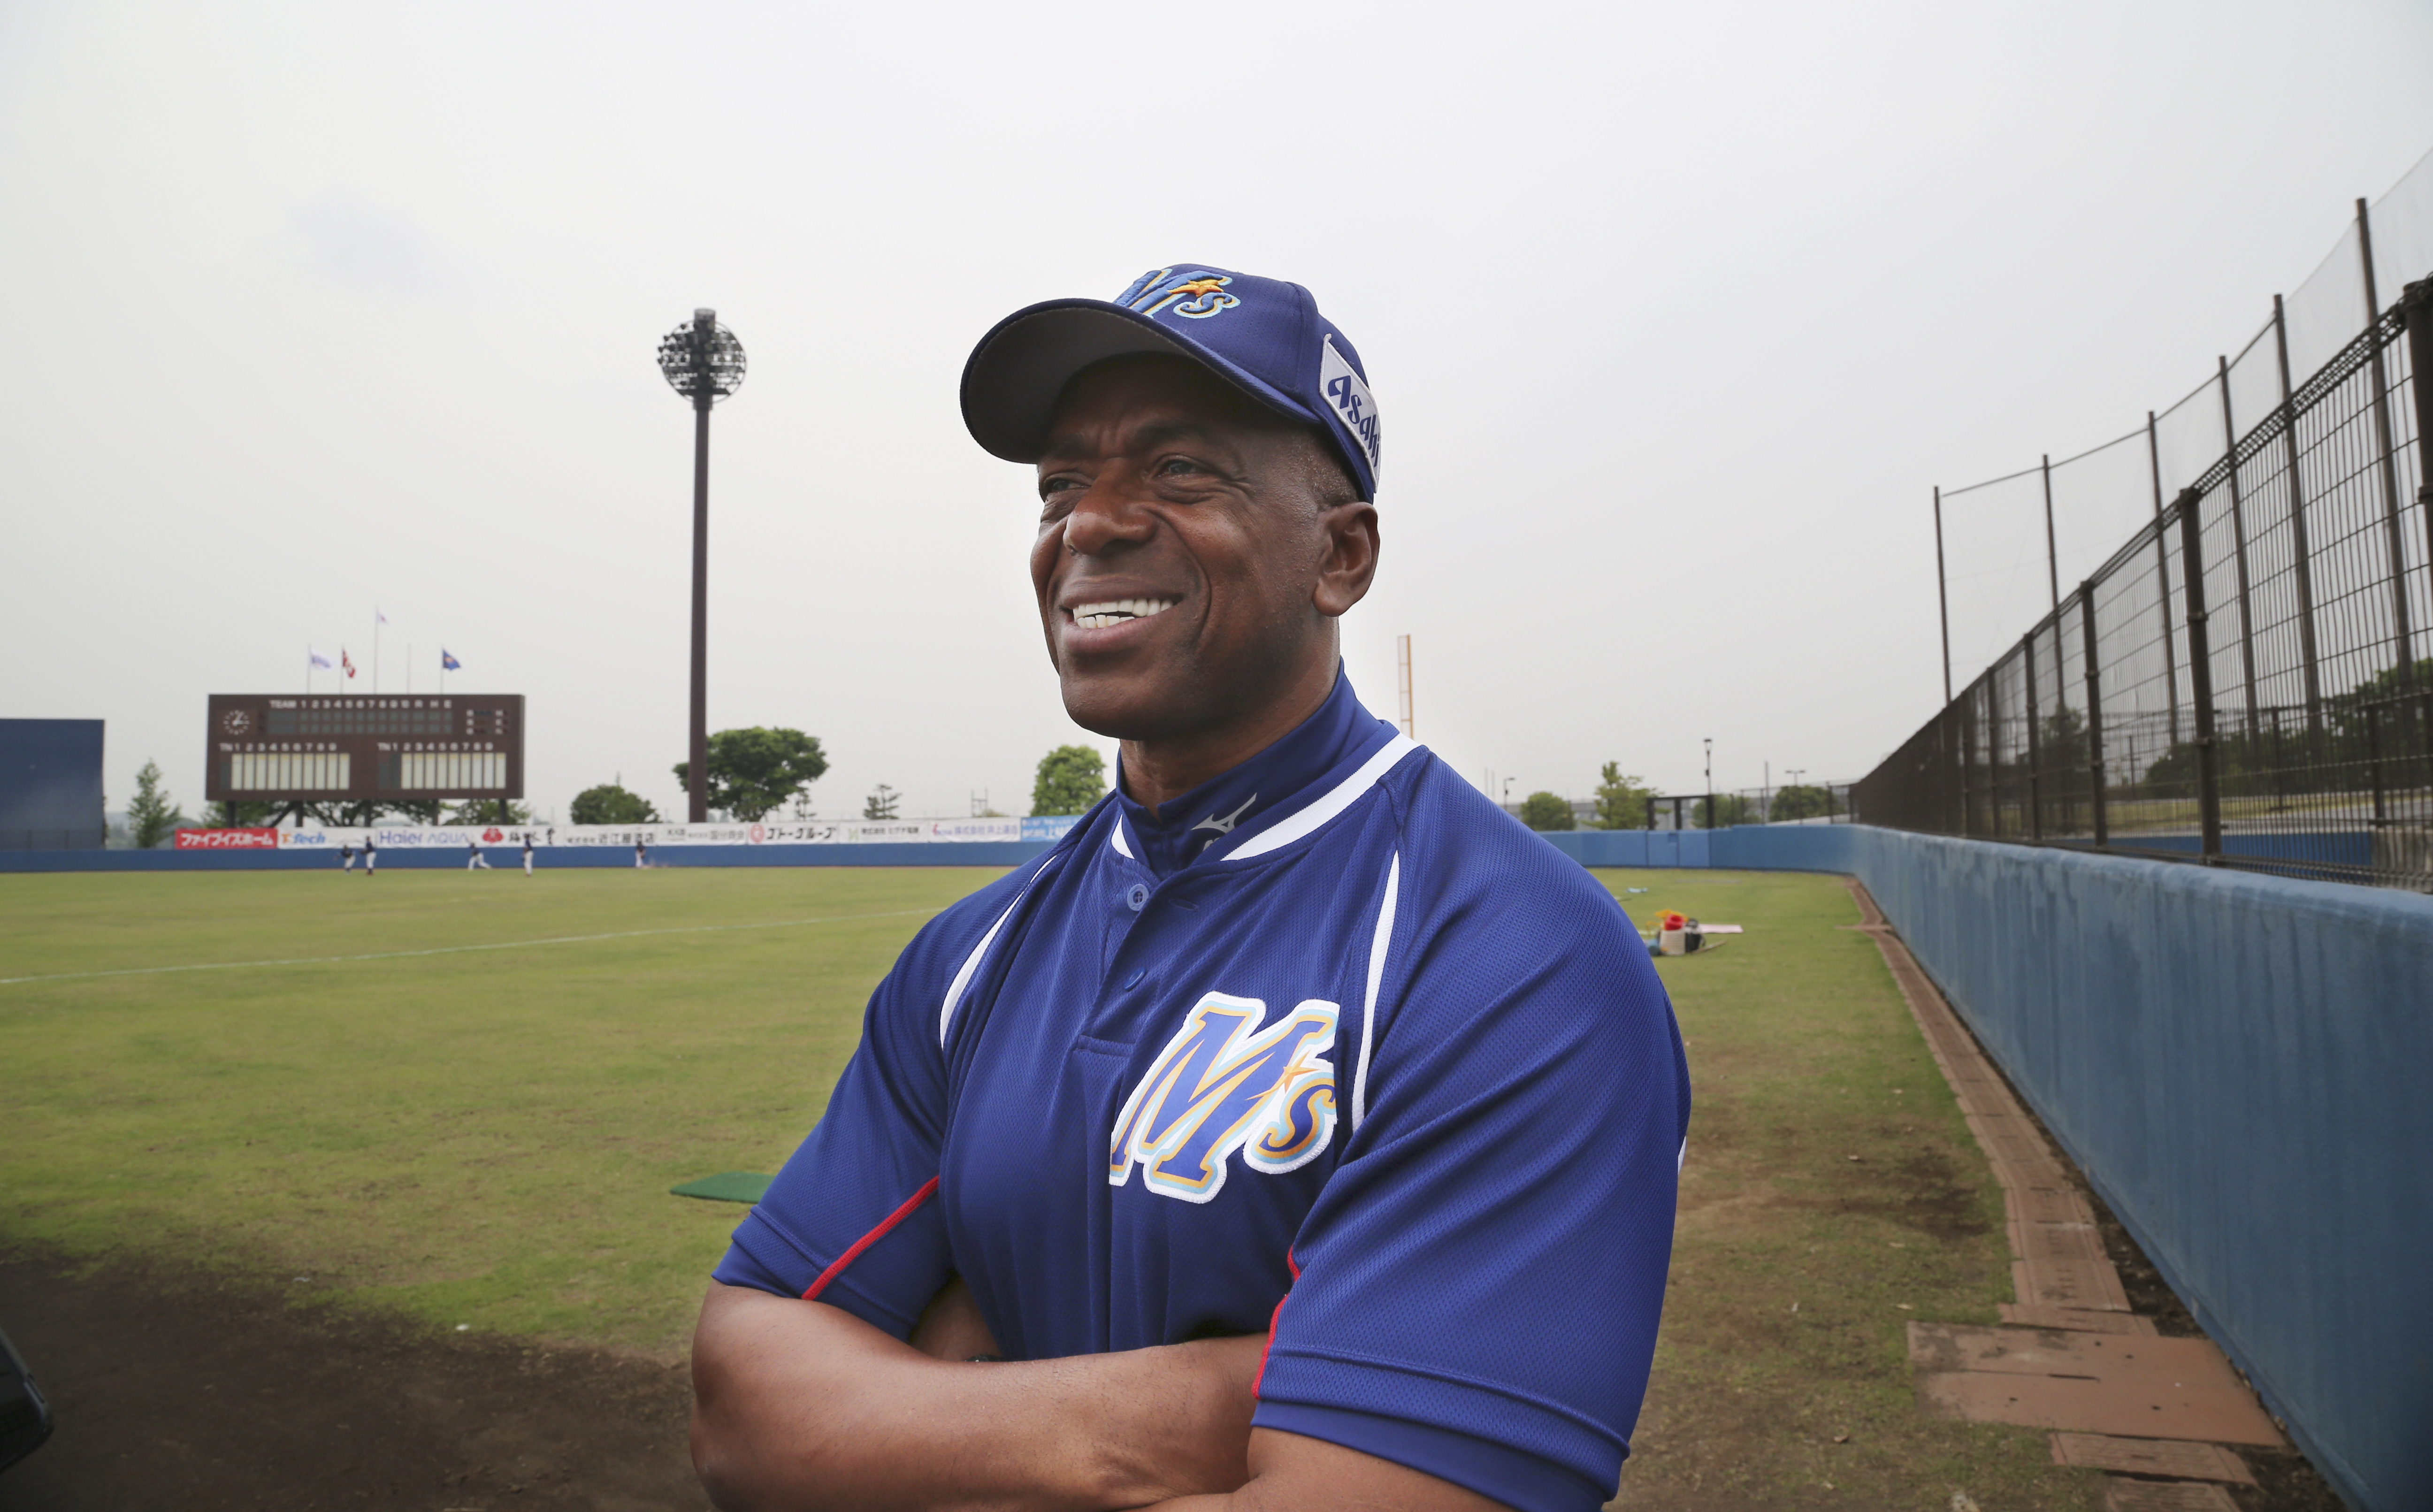 In this Saturday, May 9, 2015 photo, former Major League Baseball player and manager of Ishikawa Million Stars Julio Franco smiles during an interview with the Associated Press at a stadium in Konosu, north of Tokyo.  When Franco signed a contract with th